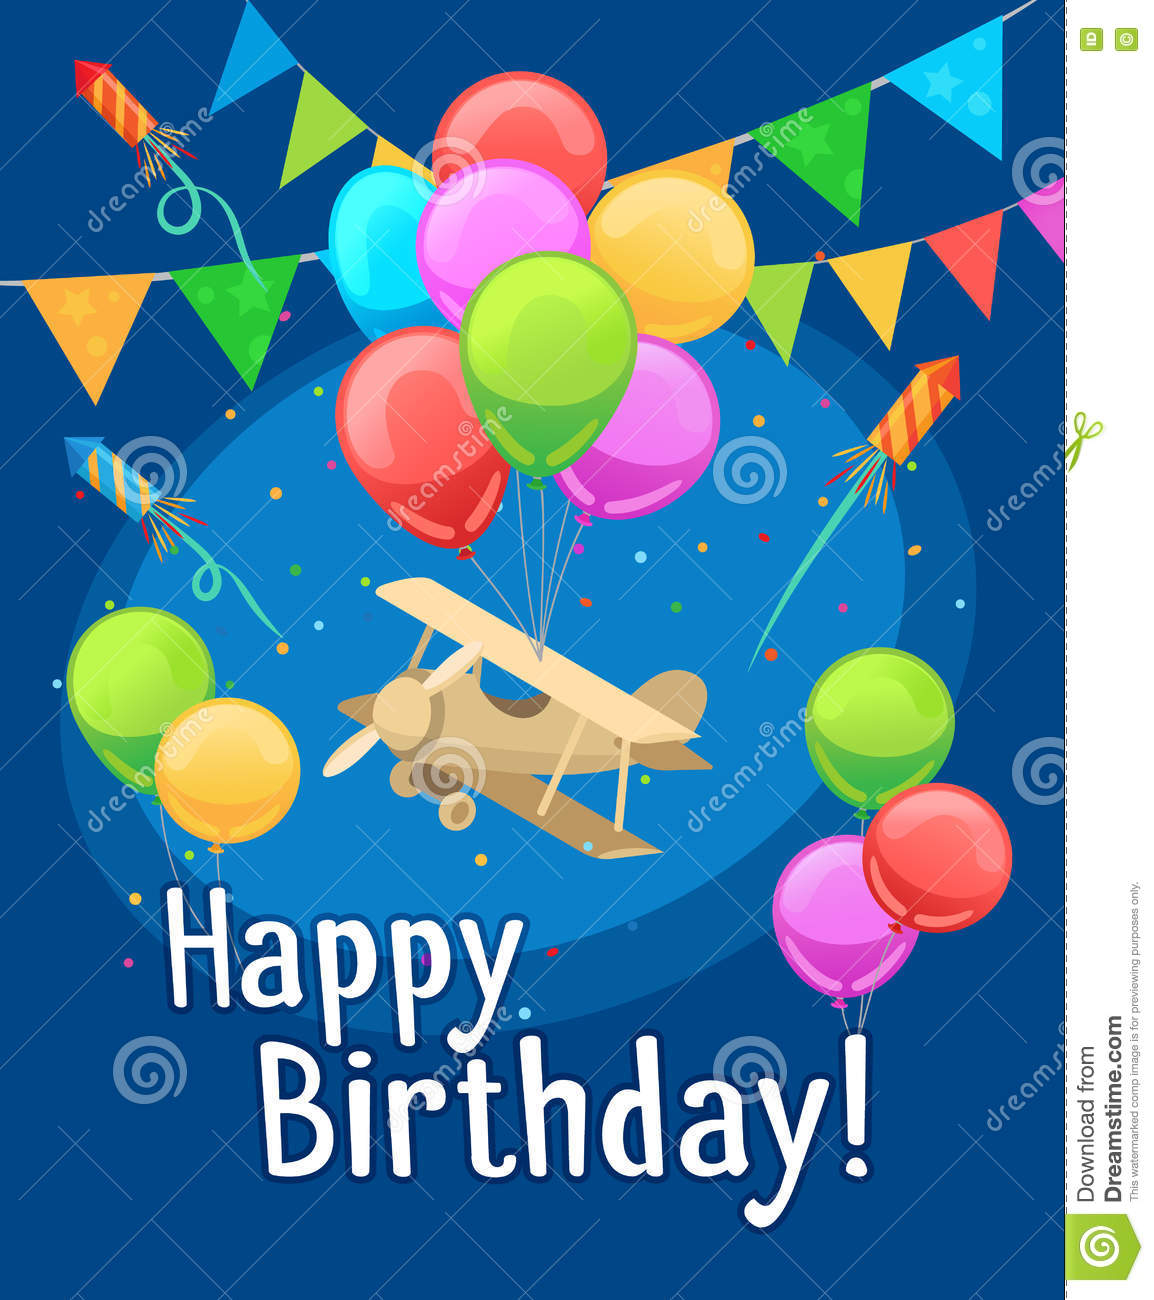 6 Birthday Card Templates: Children Happy Birthday Card With Balloons Stock Vector